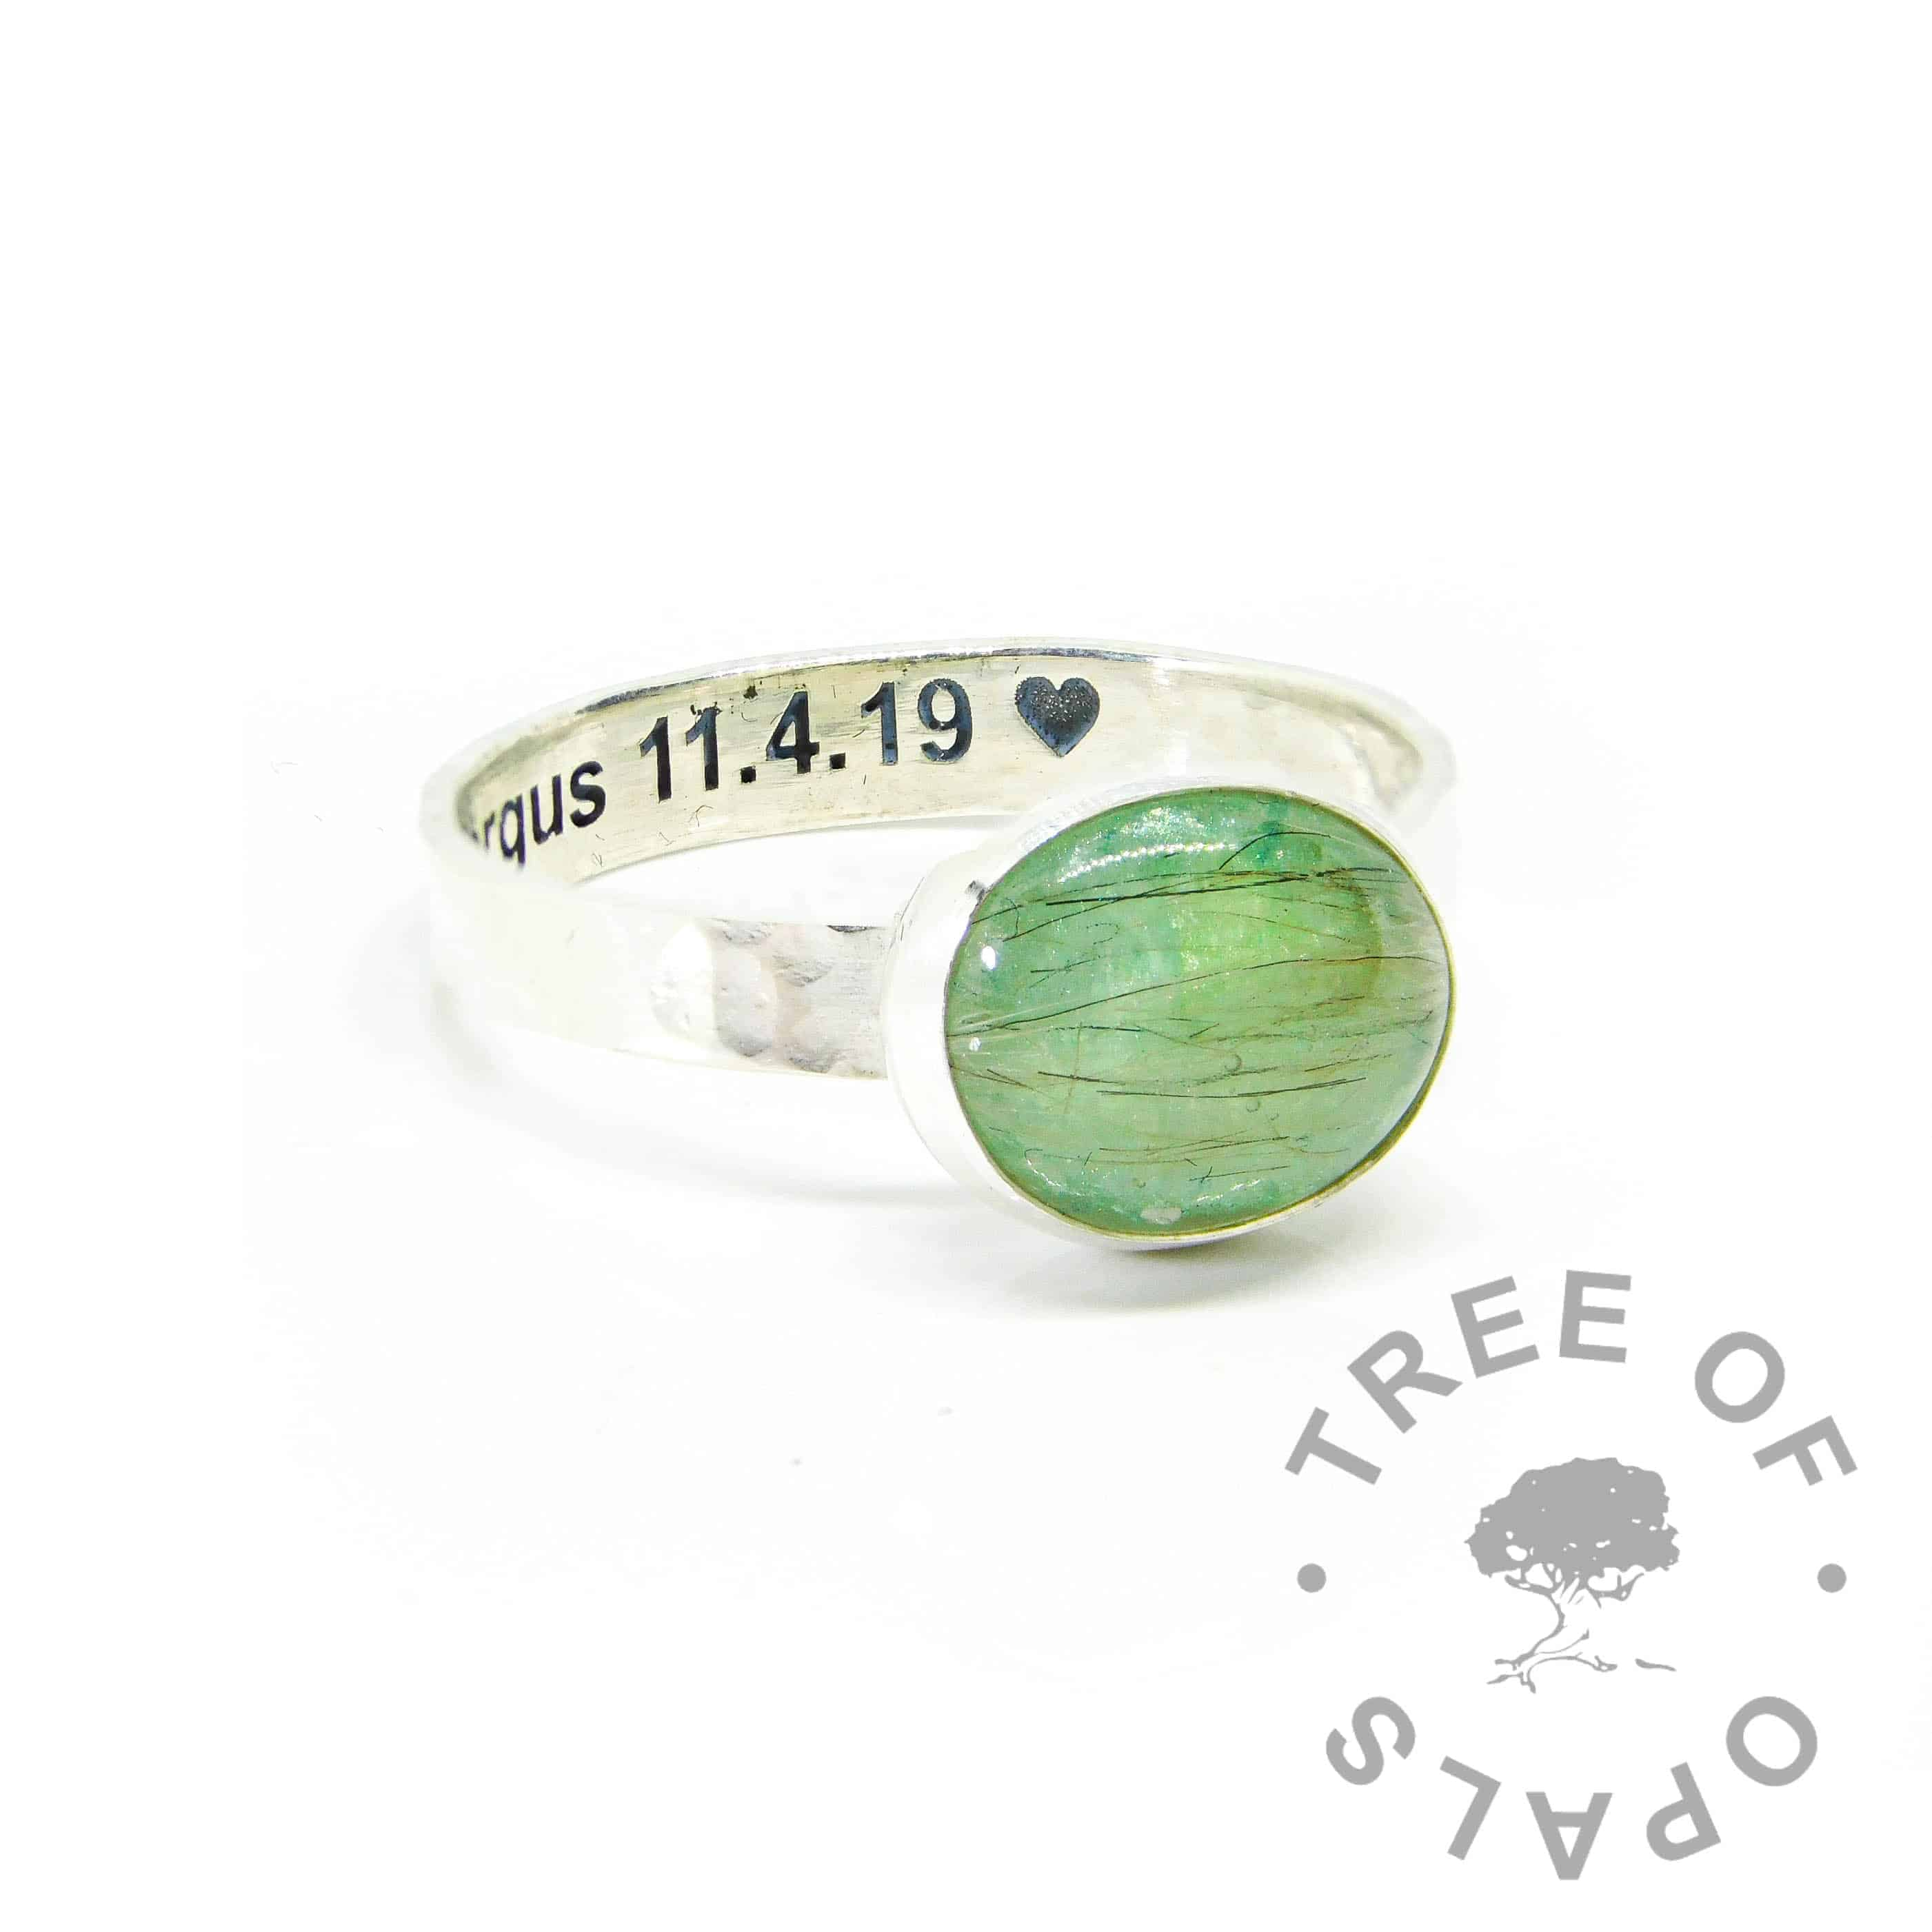 Fur ring on 3mm textured band with basilisk green resin sparkle mix. Engraved inside in arial font with heart emoji. Much of the fur is translucent and can't be seen, we only see the darker strands